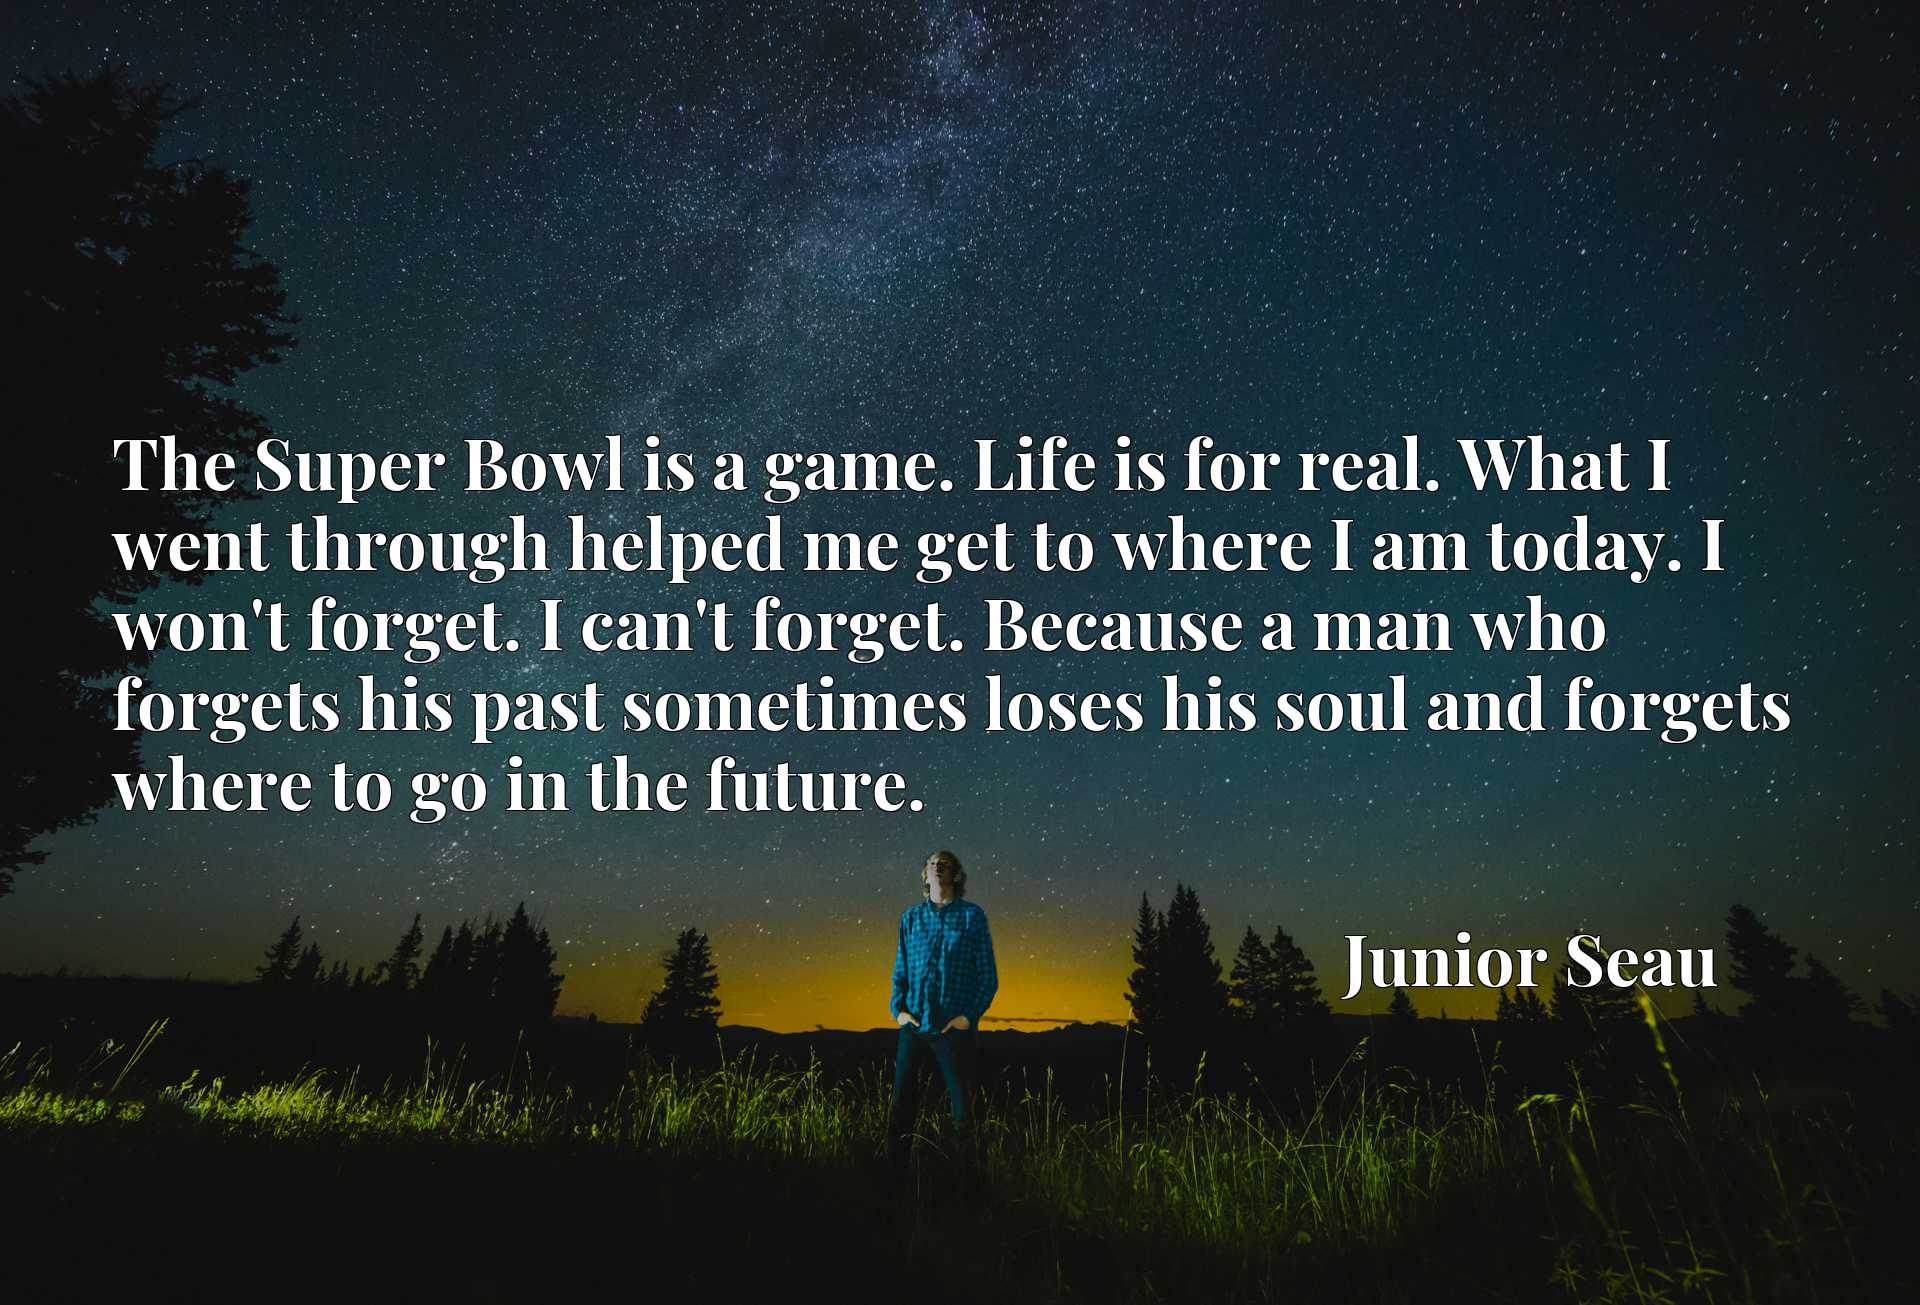 The Super Bowl is a game. Life is for real. What I went through helped me get to where I am today. I won't forget. I can't forget. Because a man who forgets his past sometimes loses his soul and forgets where to go in the future.